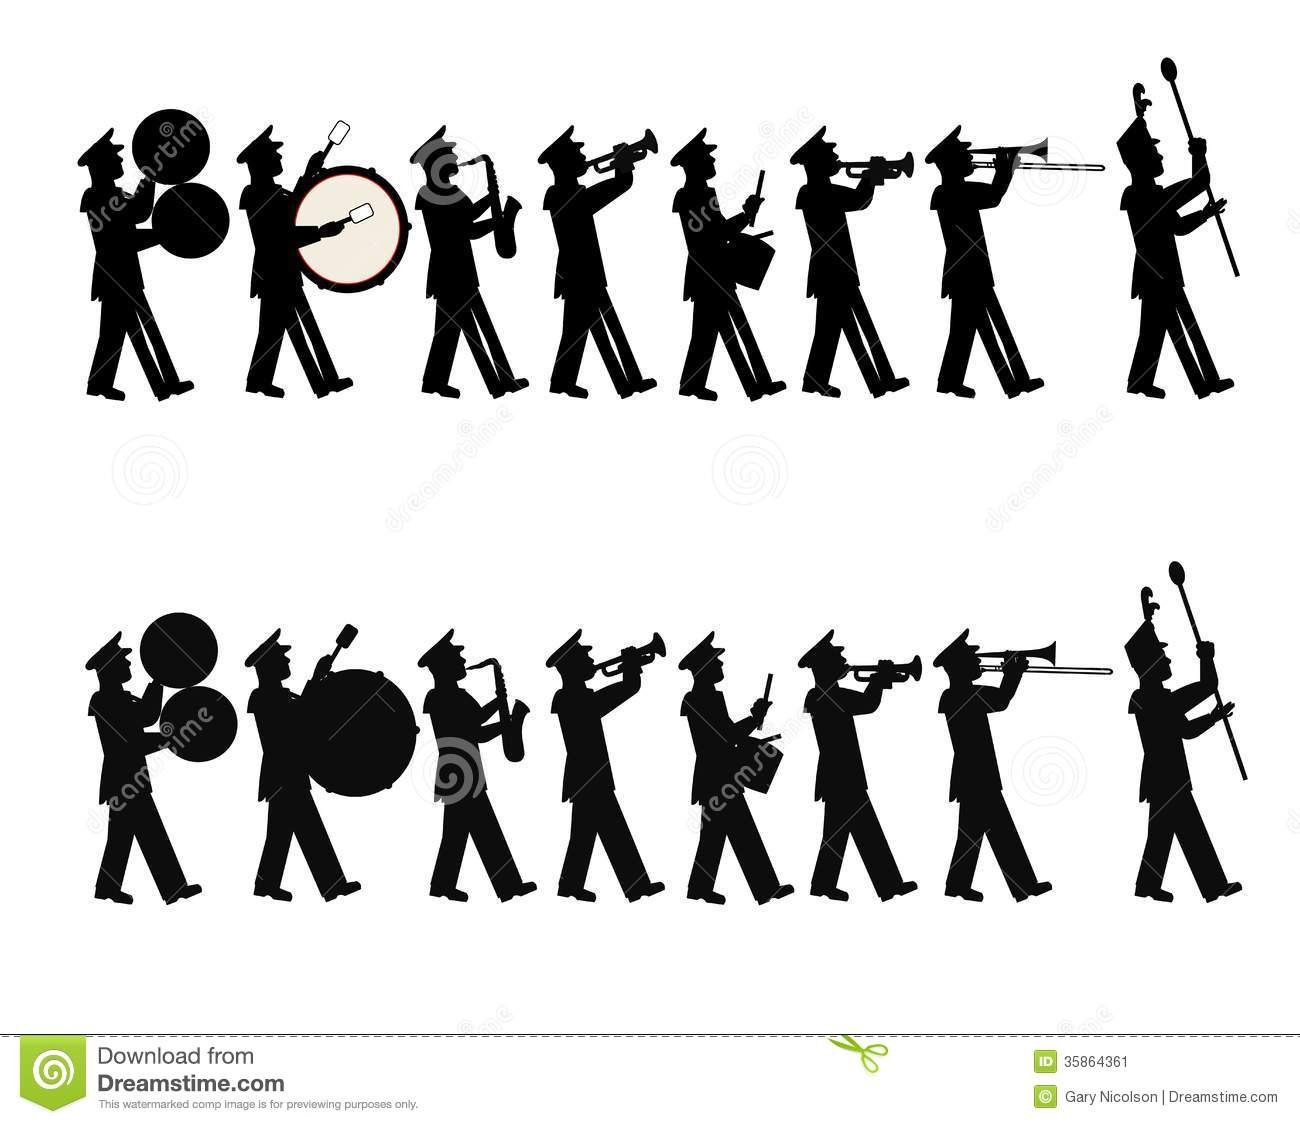 Marching Band Clipart Clarinet Marching band